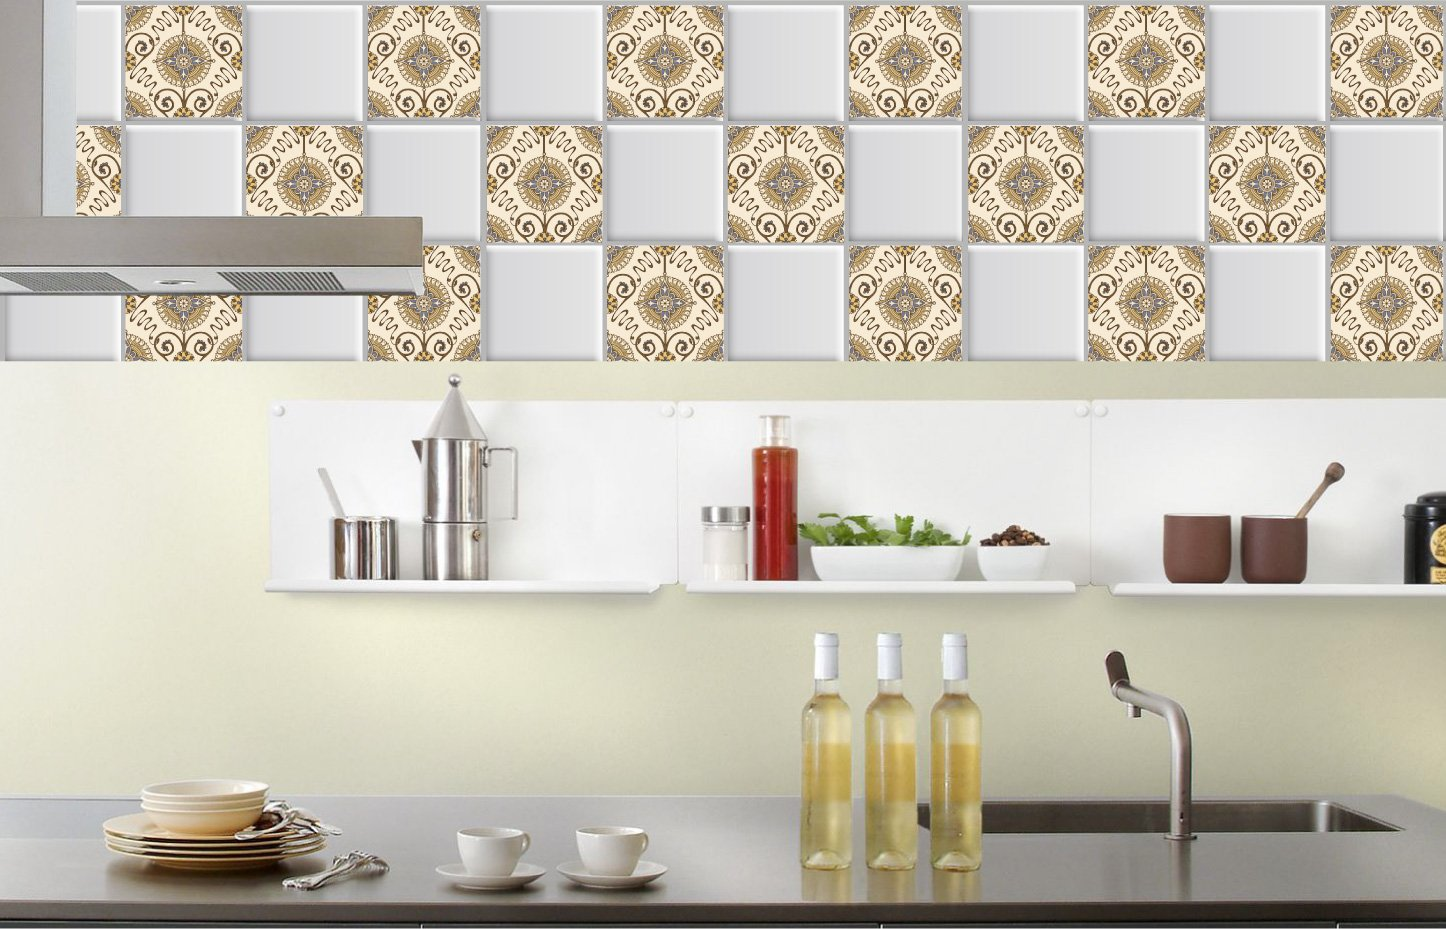 Amazon.com: Tile stickers 4x4 Inch 24 PC Set Tiles for Kitchen or ...